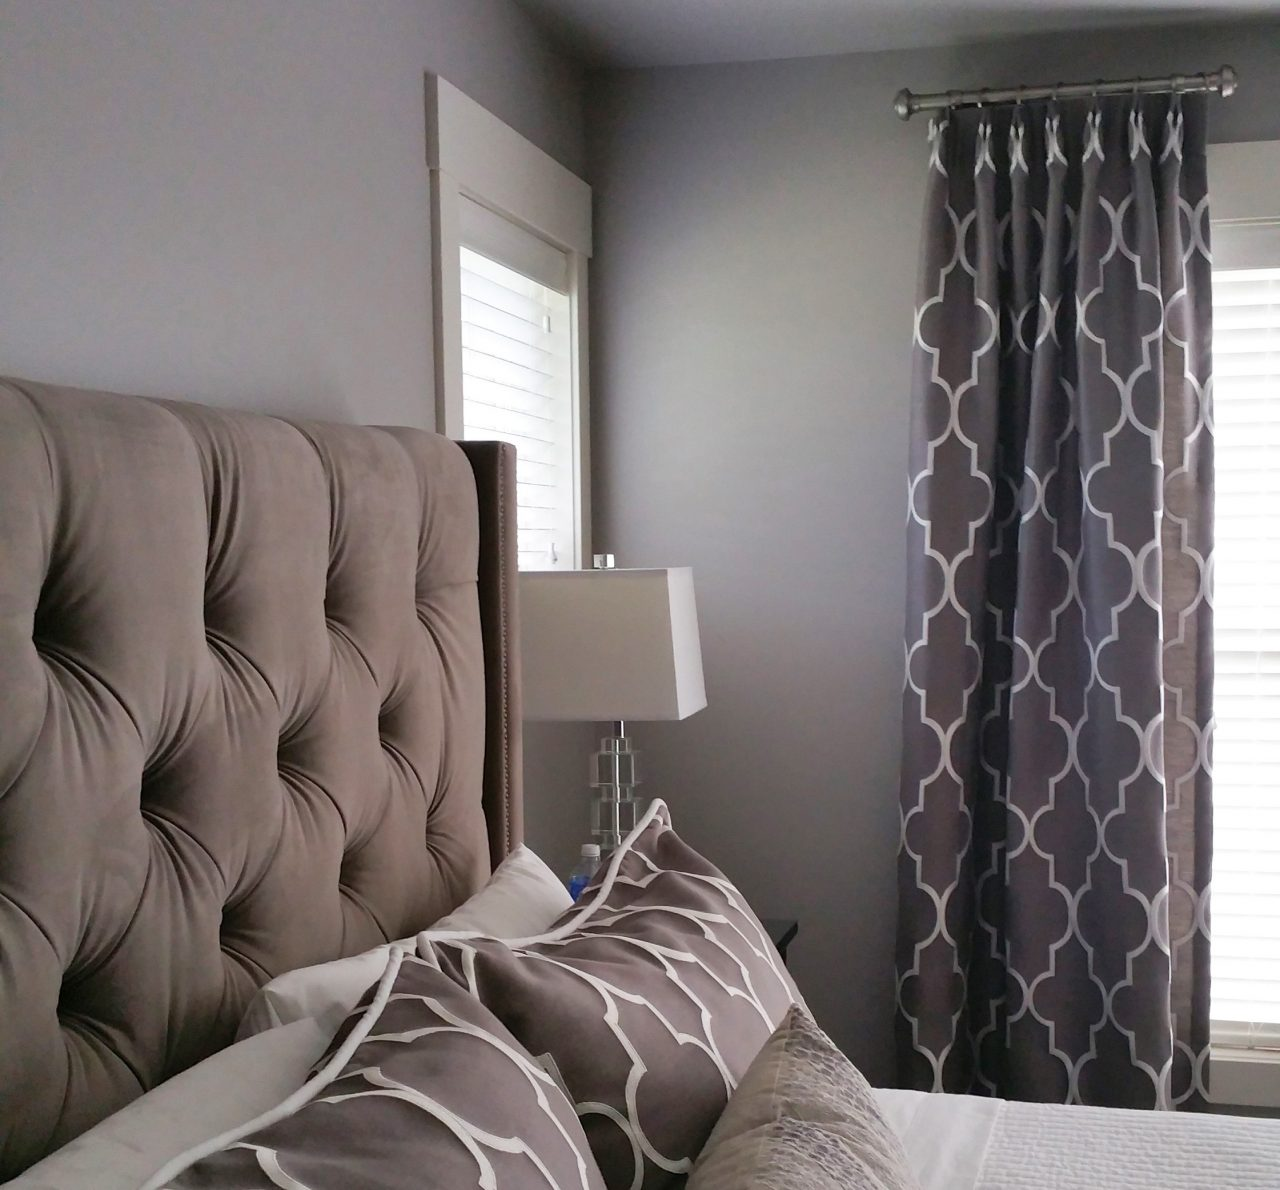 Master bedroom with tufted upholstered velvet headboard. Pinched, pleated to pattern drapery panels with Fabricut and Trend fabric on decorative drapery hardware from Forest Group Drapery Hardware. The same fabric was used for the king sized pillow shams with white velvet welt cord.